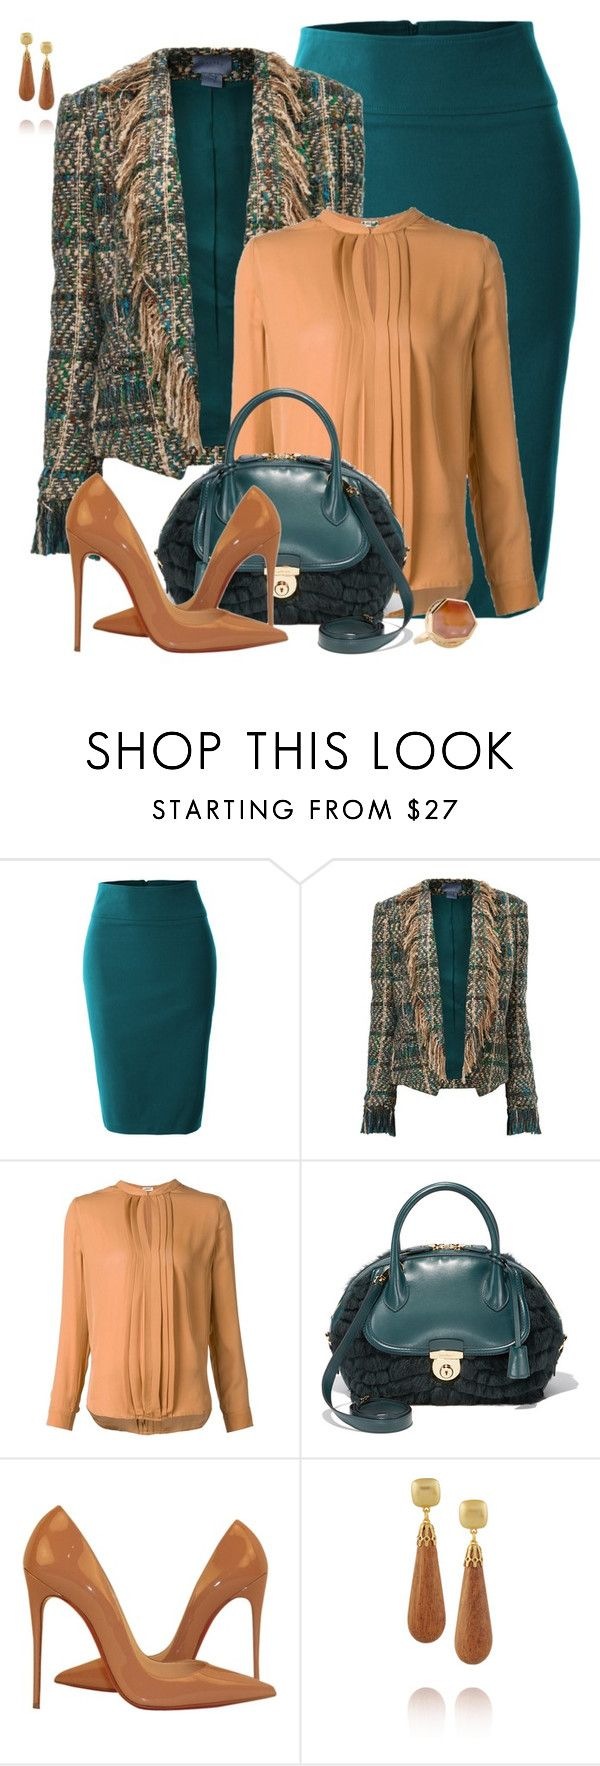 """Patricia"" by rotwein ❤ liked on Polyvore featuring LE3NO, Maiyet, L'Agence, Salvatore Ferragamo, Christian Louboutin, Kenneth Jay Lane and Andy Götz"